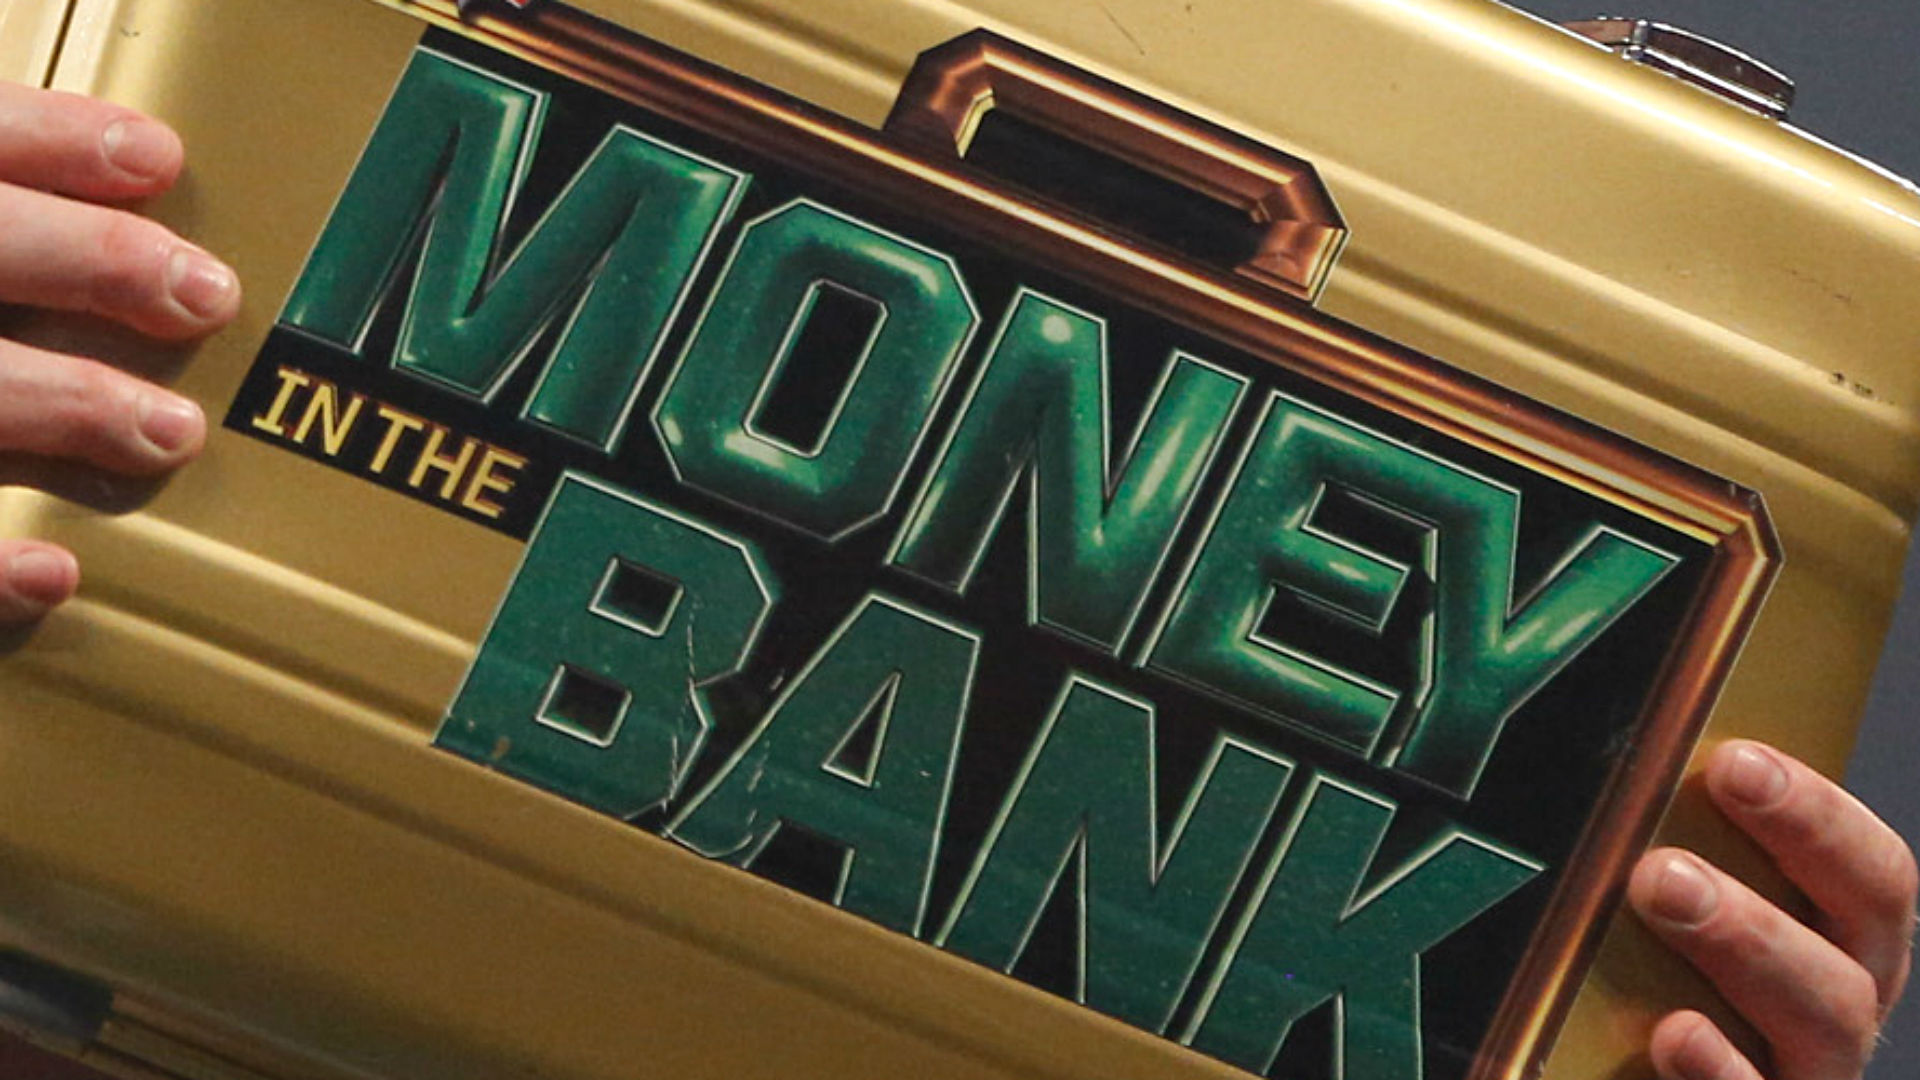 money in the bank - photo #3